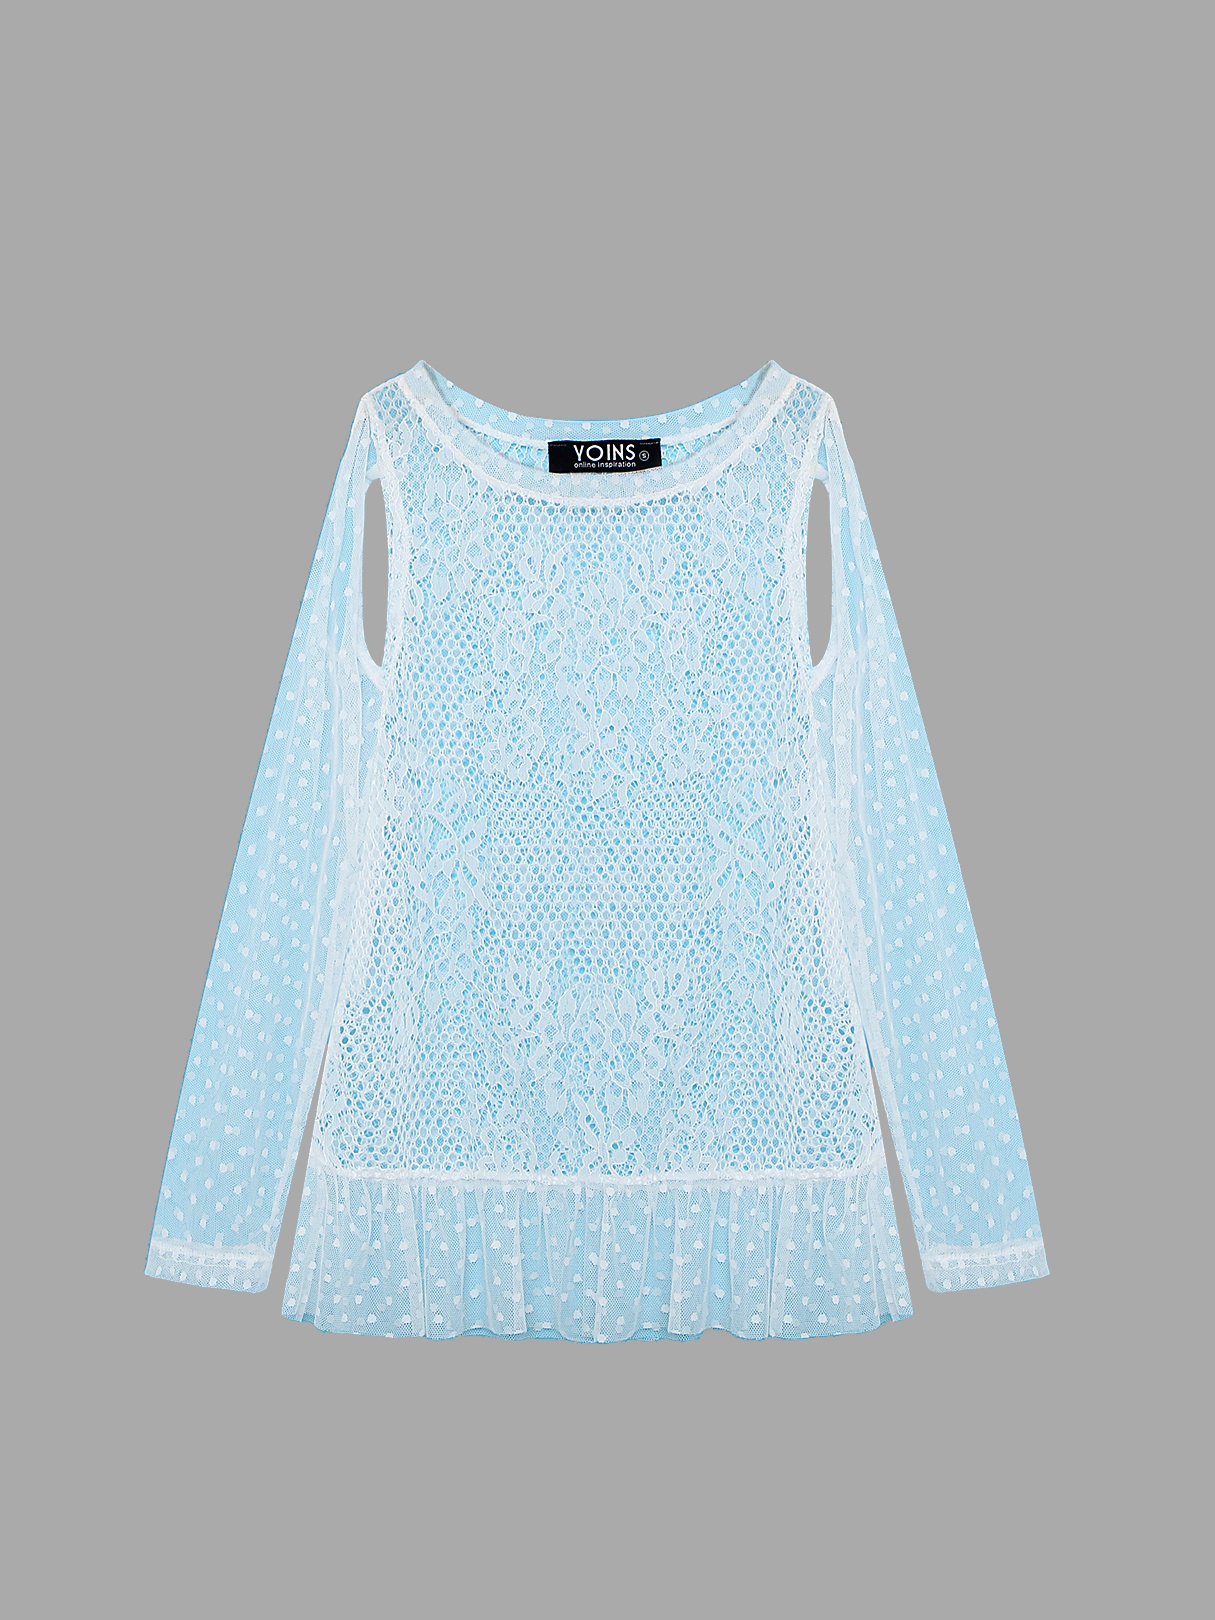 Cut Out Long Sleeves Lace Top in White